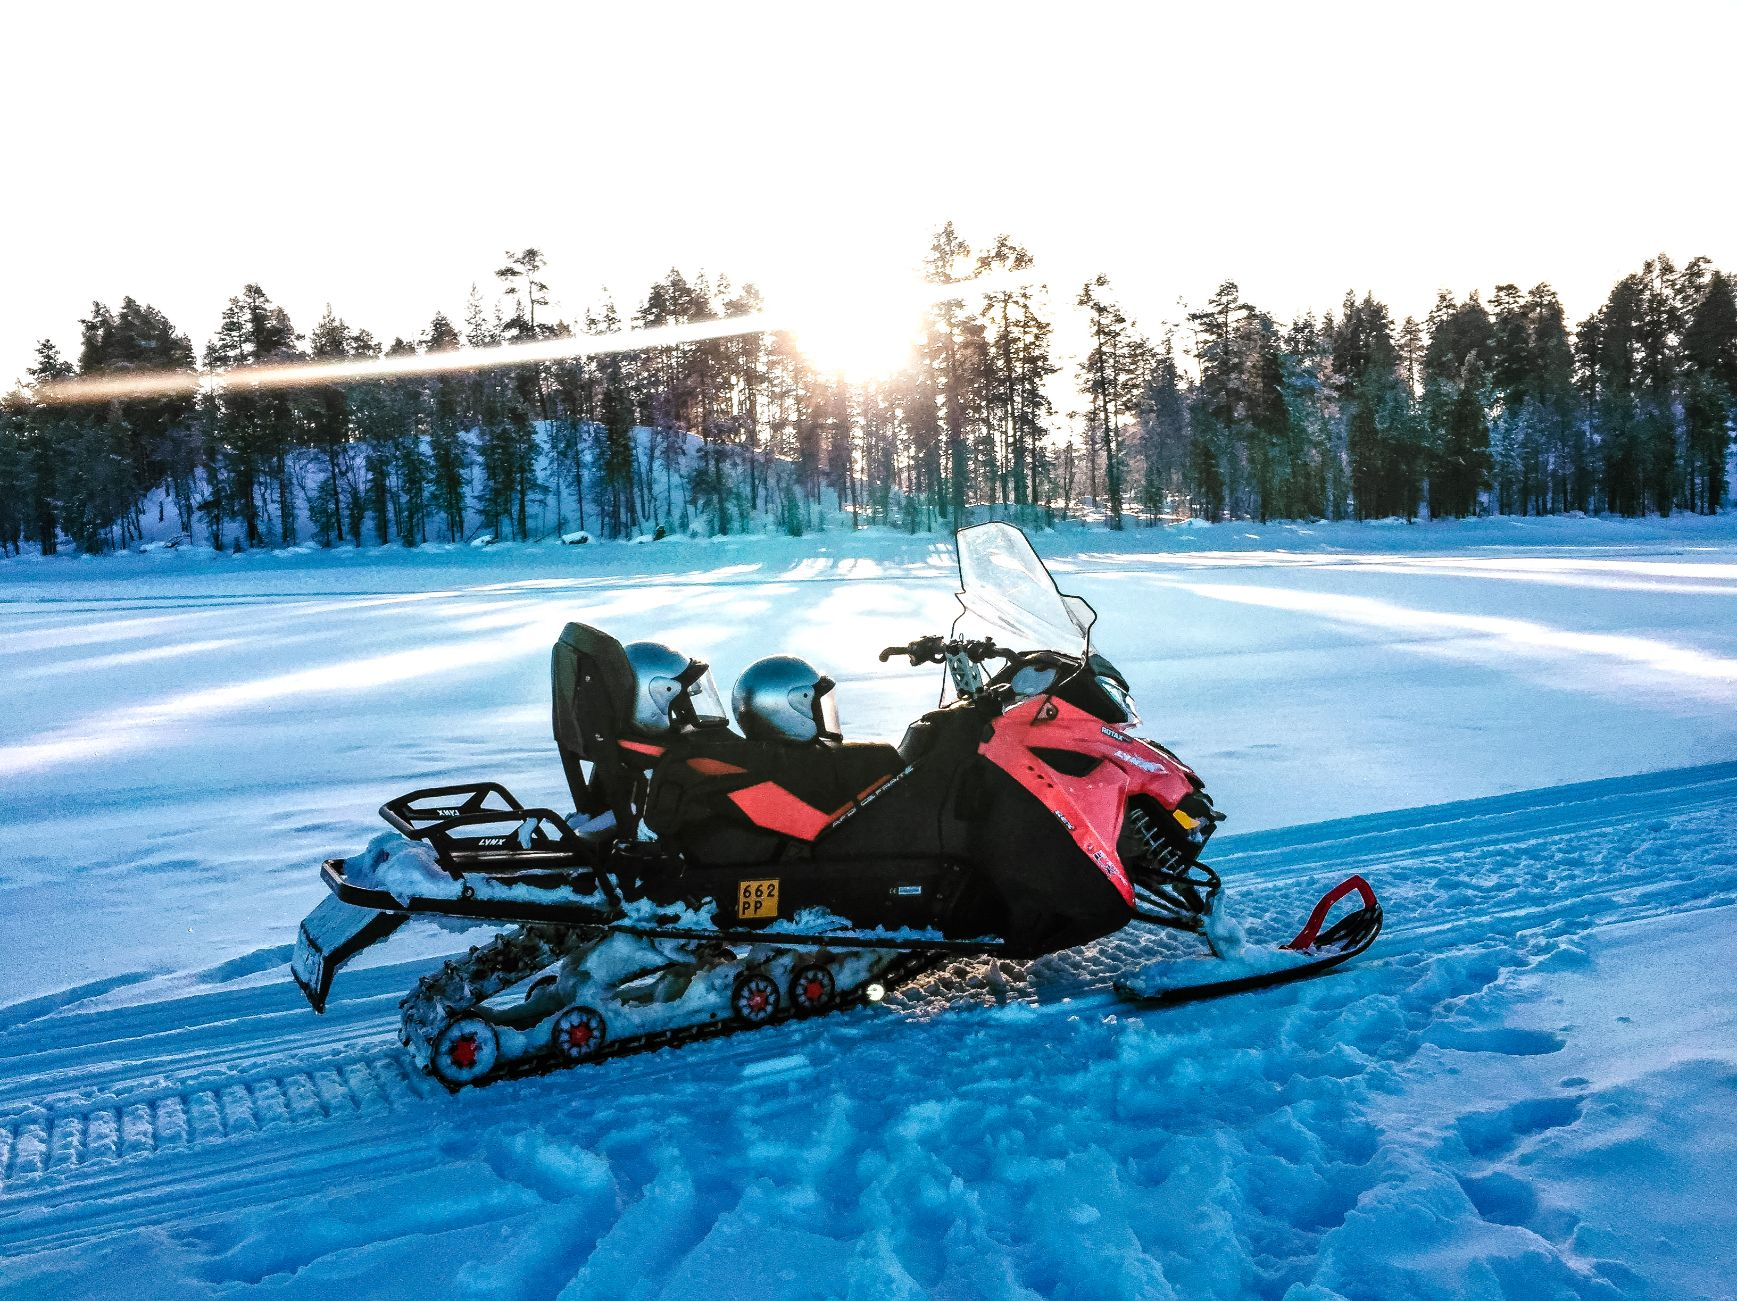 snowmobile on frozen lake with sun shining through trees in the background in Finnish Lapland